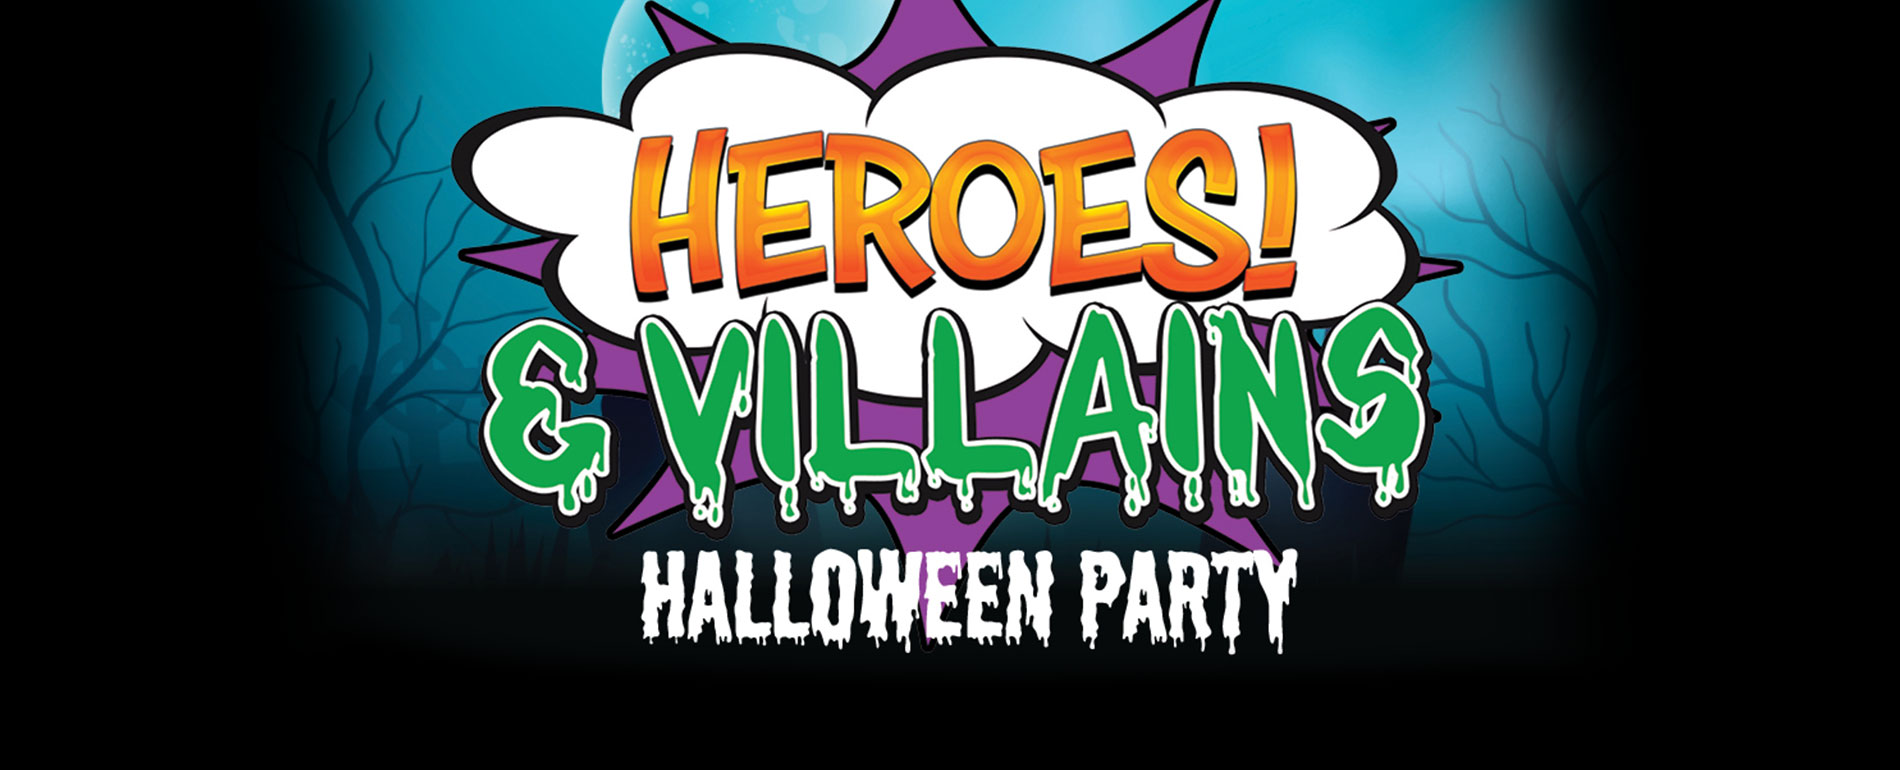 Poconos Halloween Party - Hero vs villain